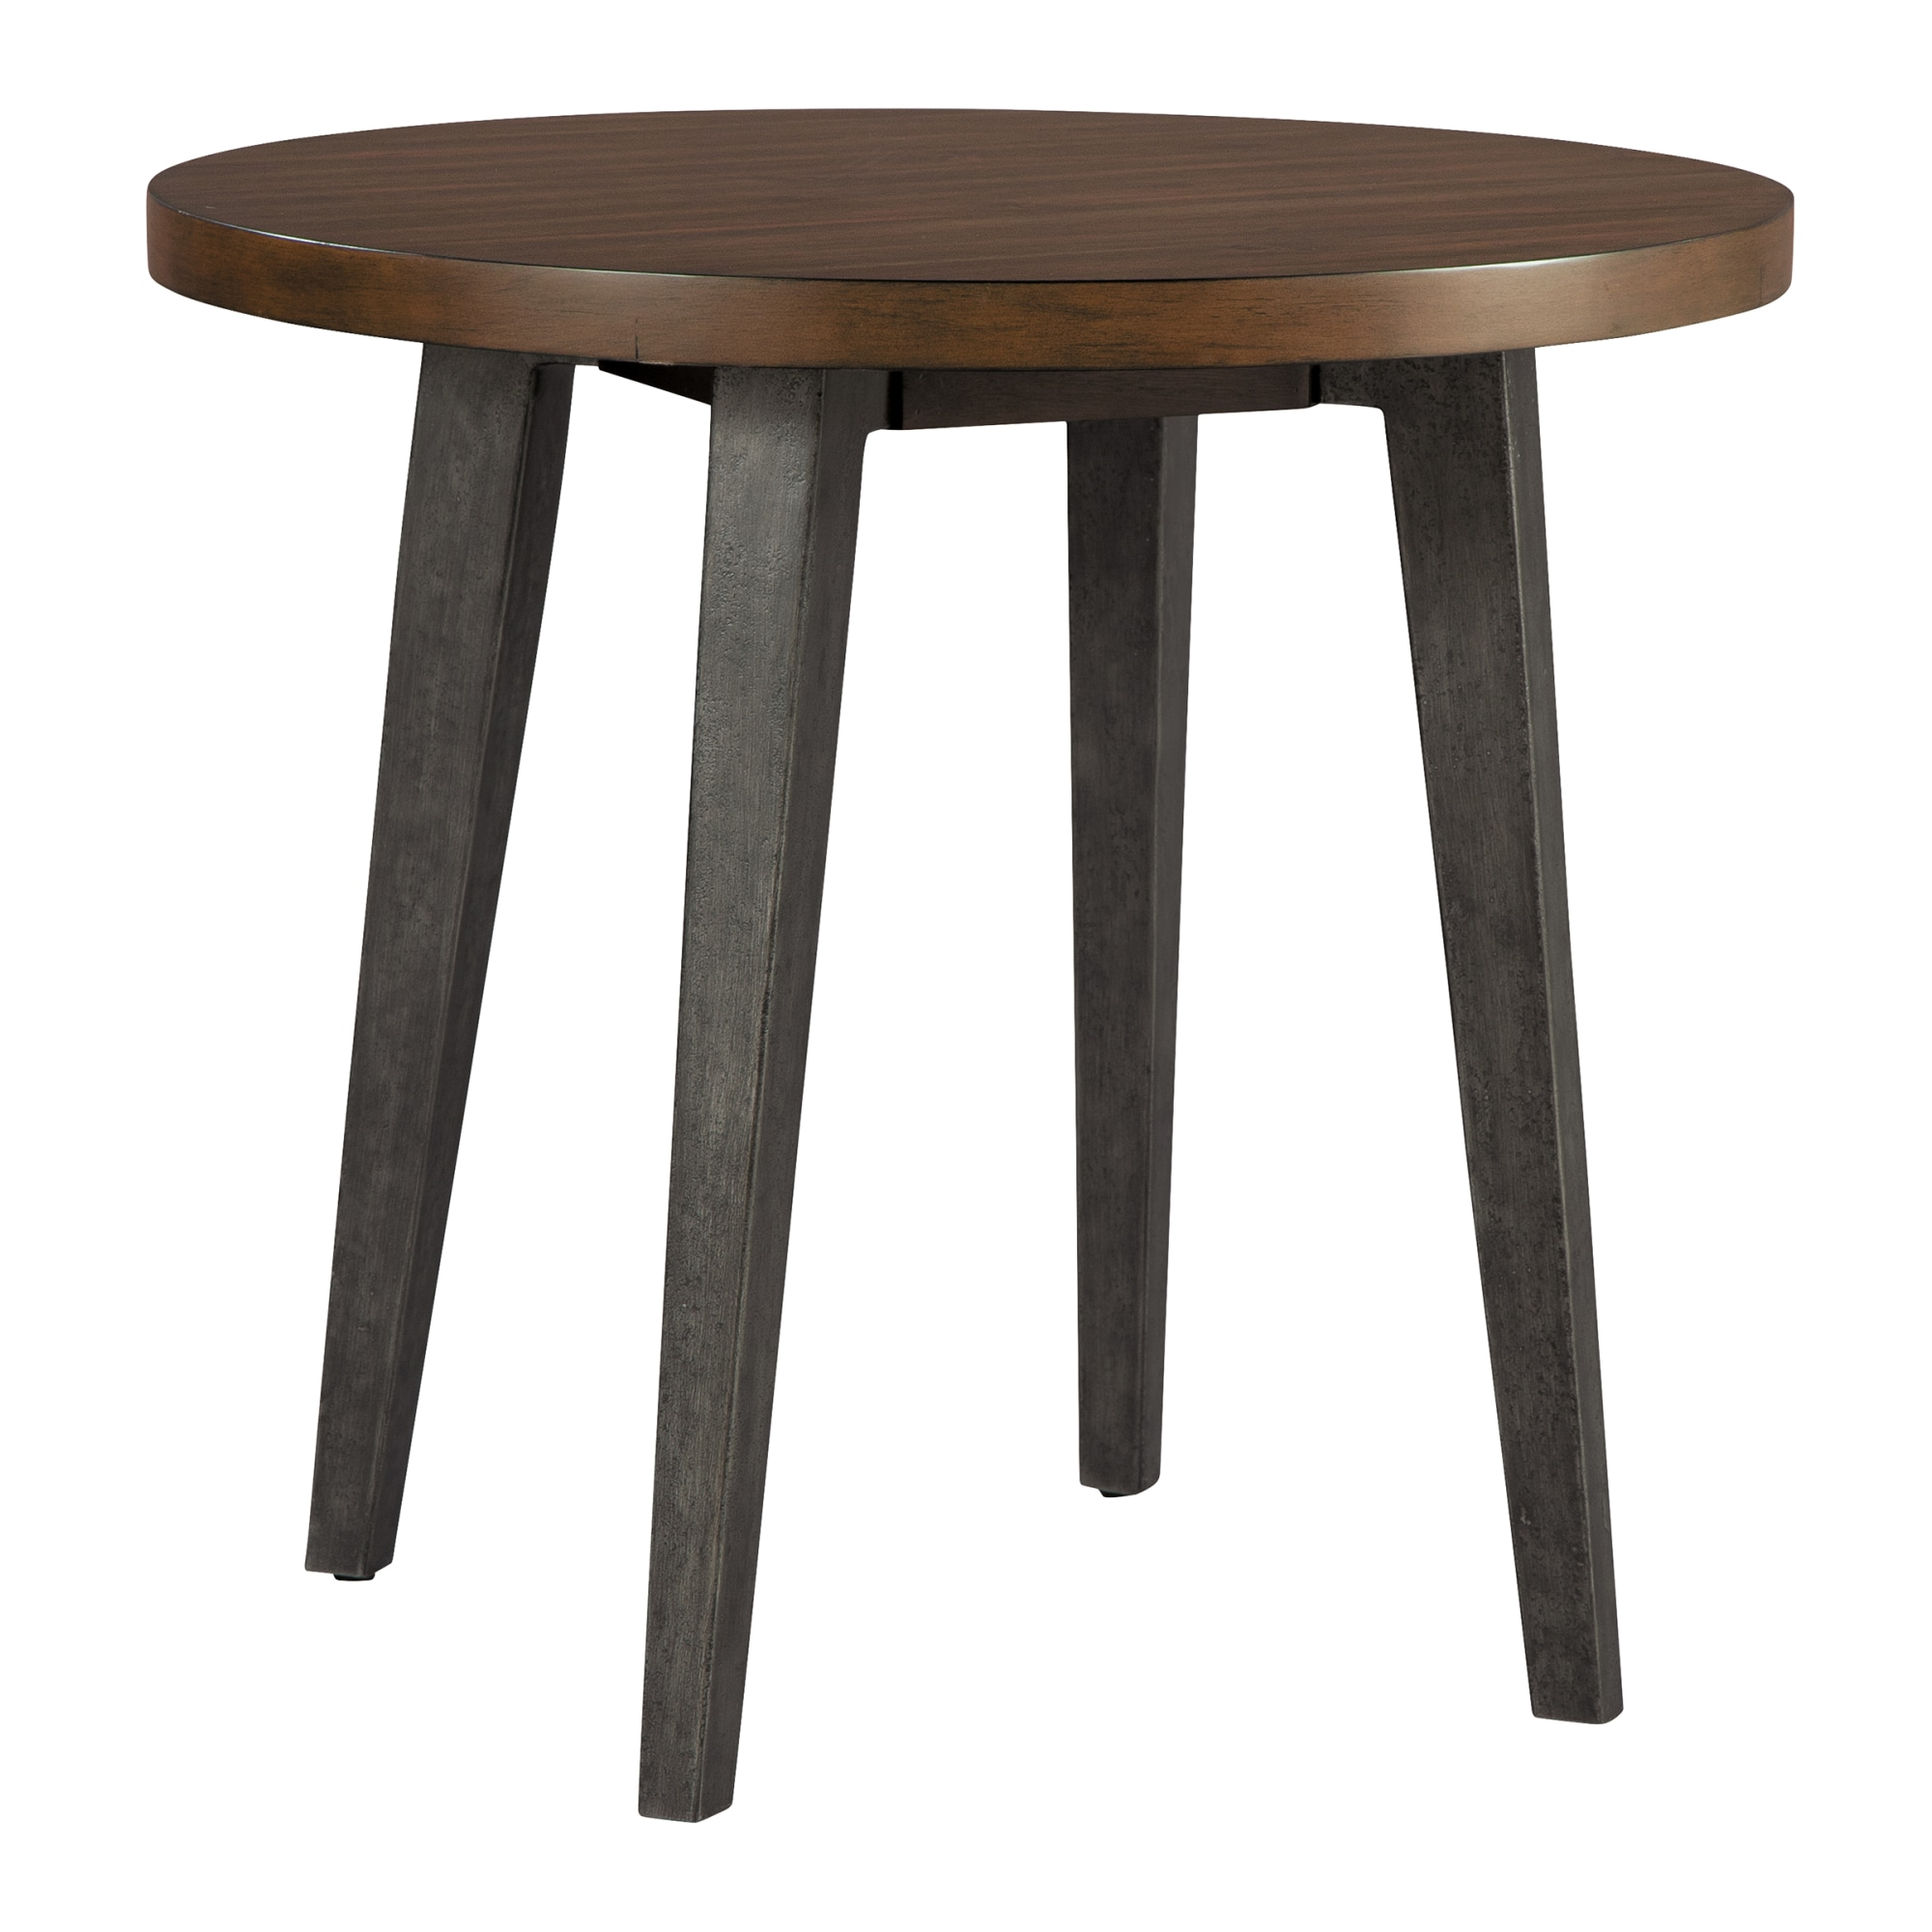 Image for 2-4307 Monterey Point Splayed Leg End Table from Hekman Official Website